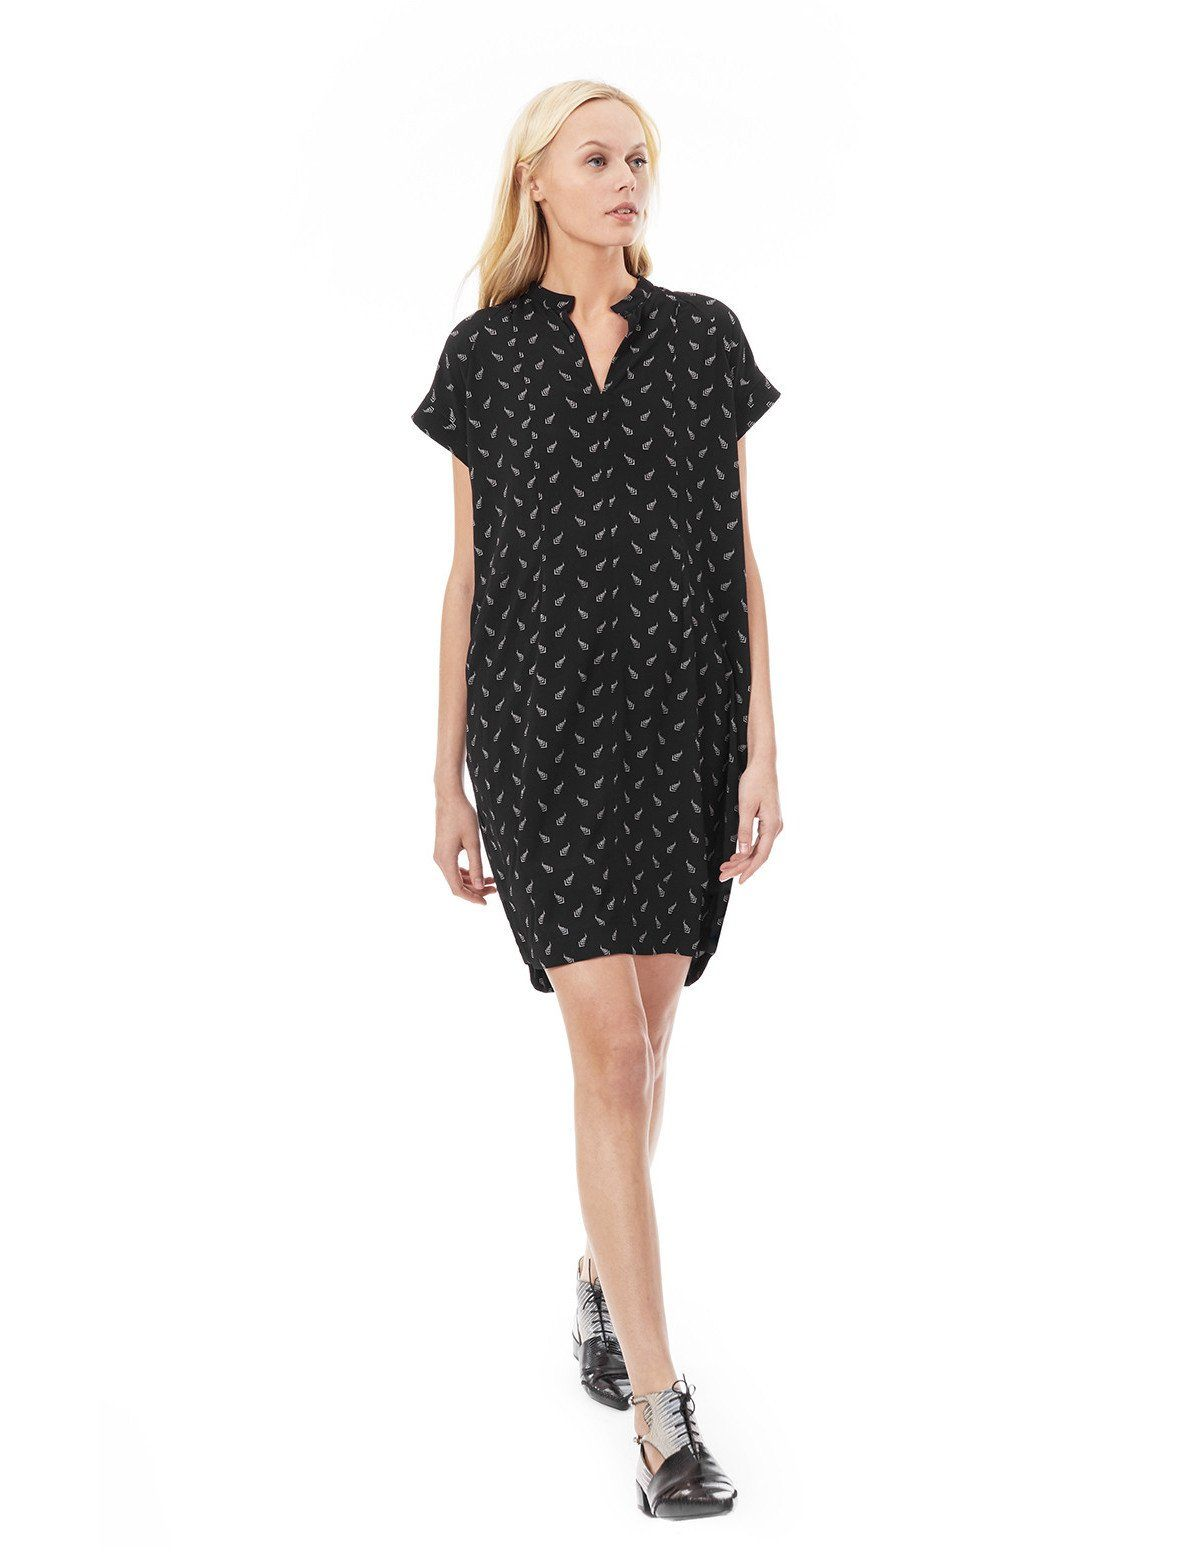 802410219c4ed Cybelle - Black Arrowhead nursing and maternity dress short sleeve dress  Loyal Hana ...